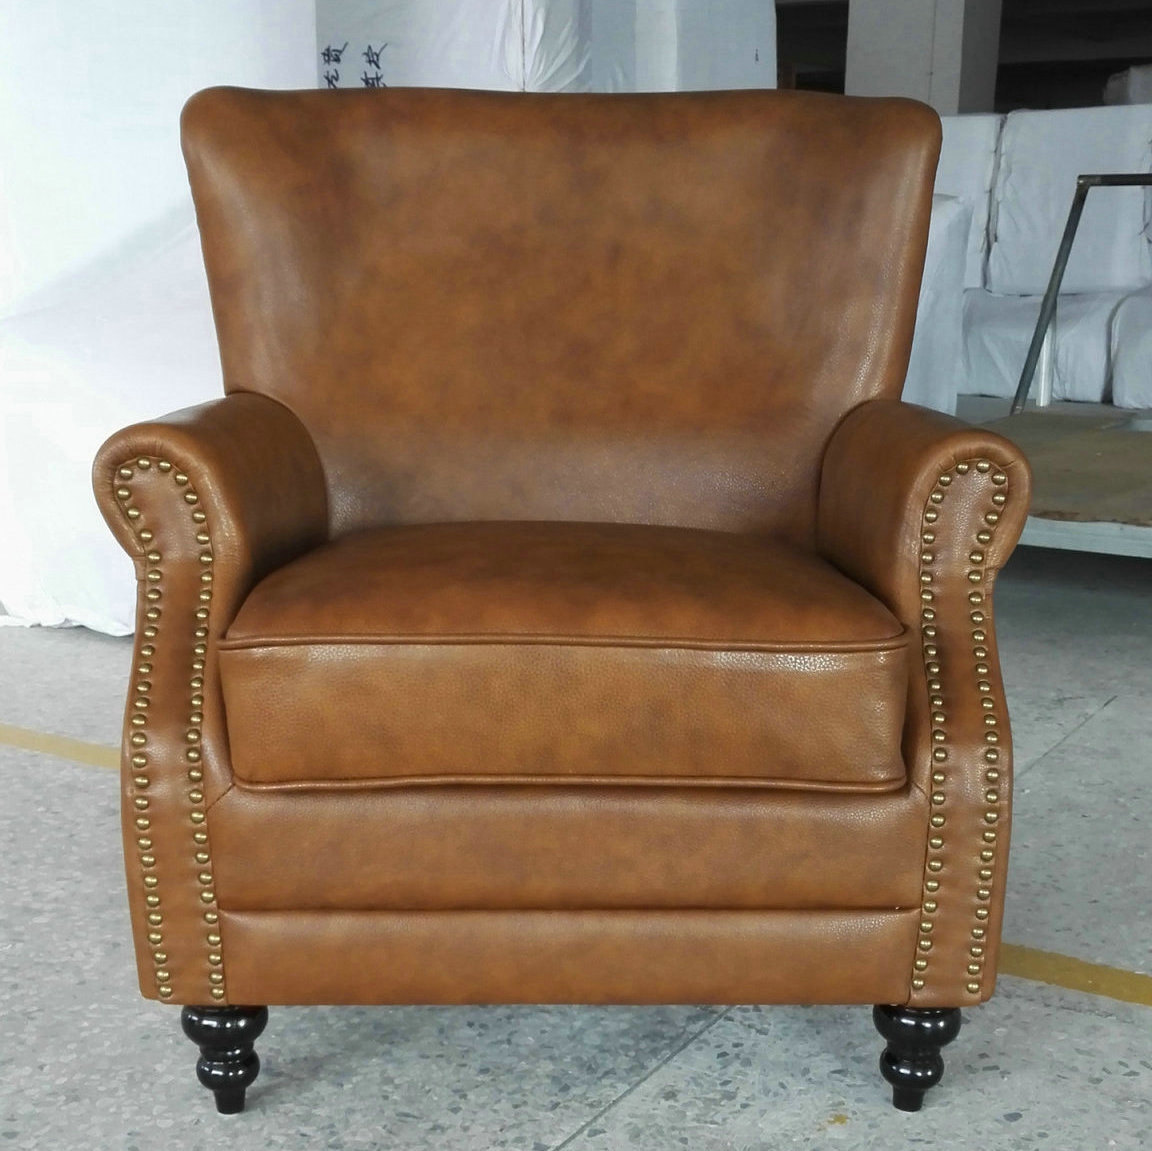 Superieur China Tobacco Color Leather Chair, Cigar Club Chair, Hotel Chair (A888)    China Club Chair, Chair